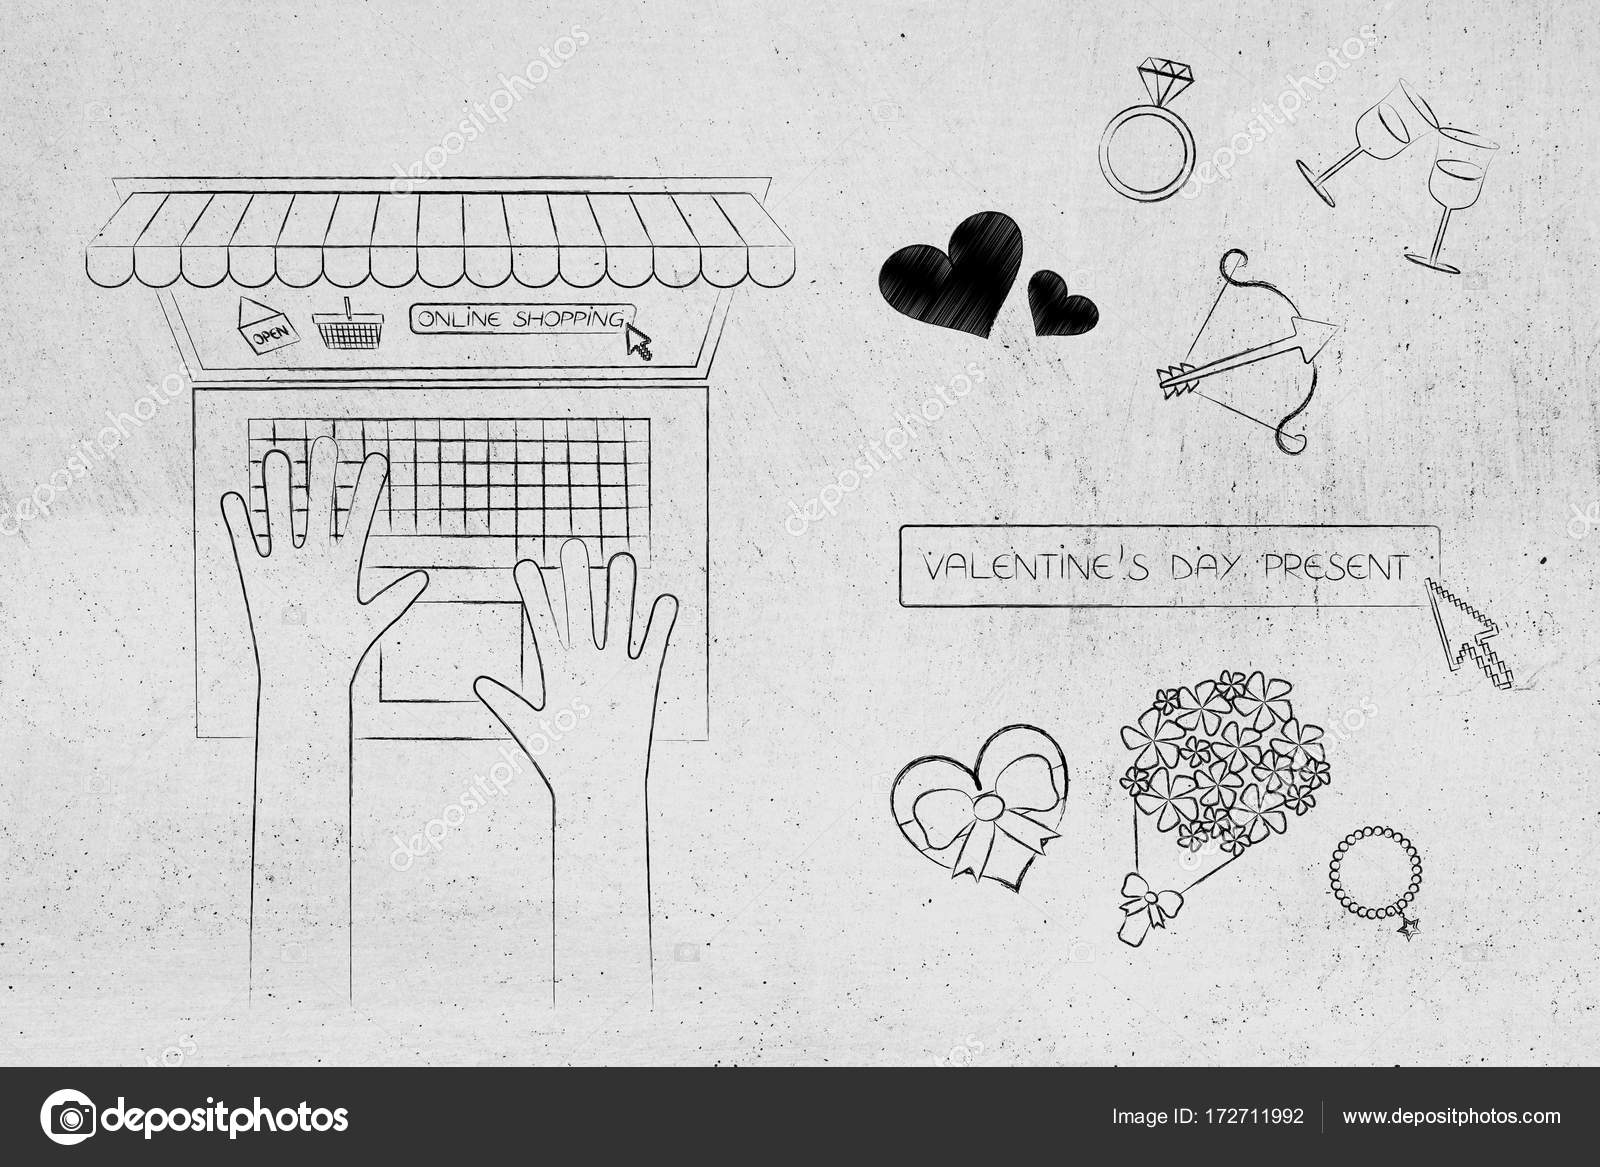 Valentines Day Symbols With Search Bar And Laptop User On Online